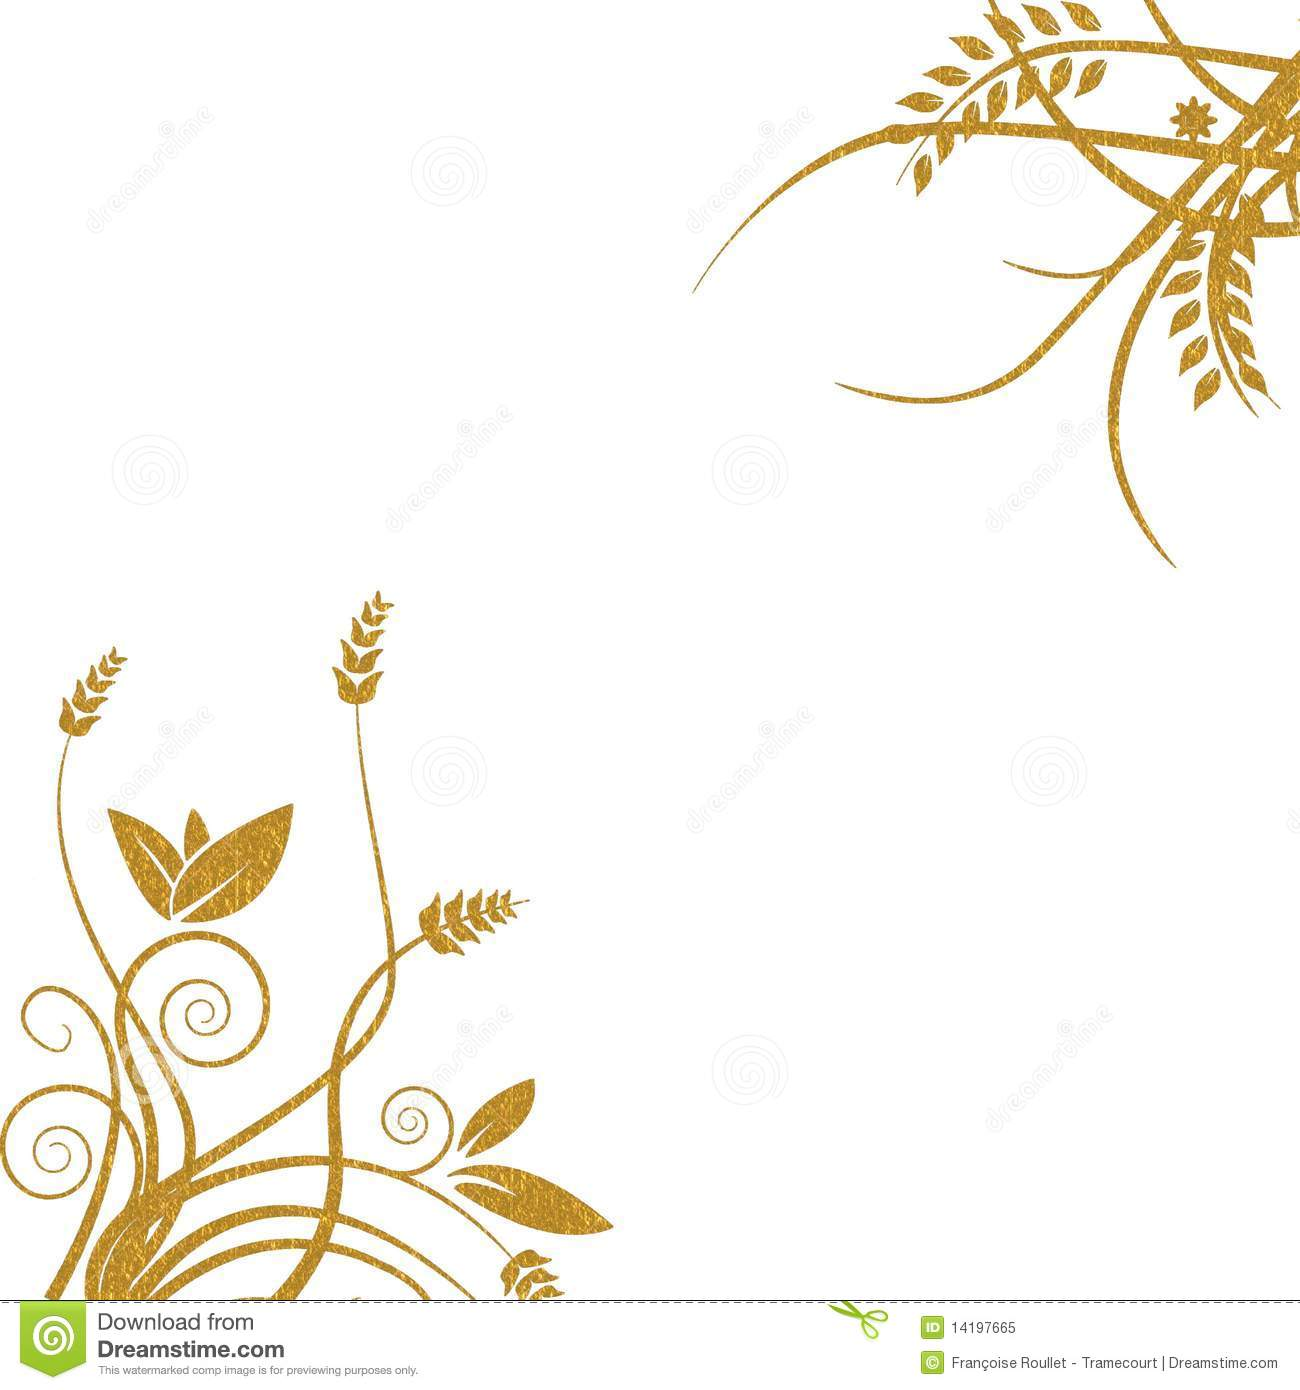 Gold Floral Background Royalty Free Stock Photo